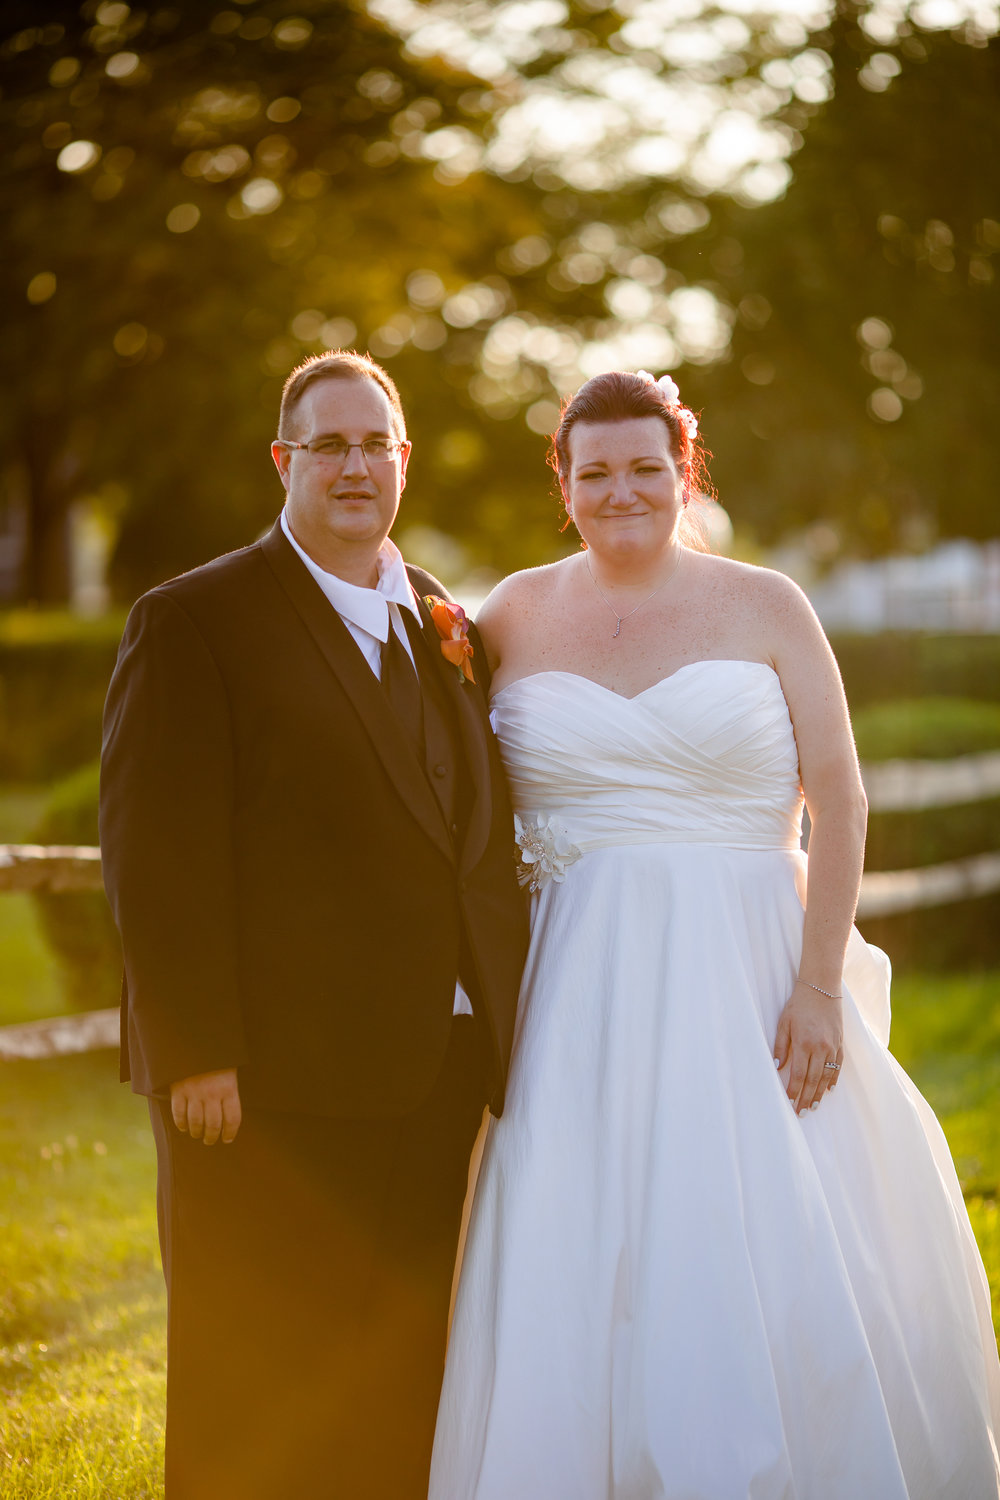 Syracuse-Wedding-146.jpg